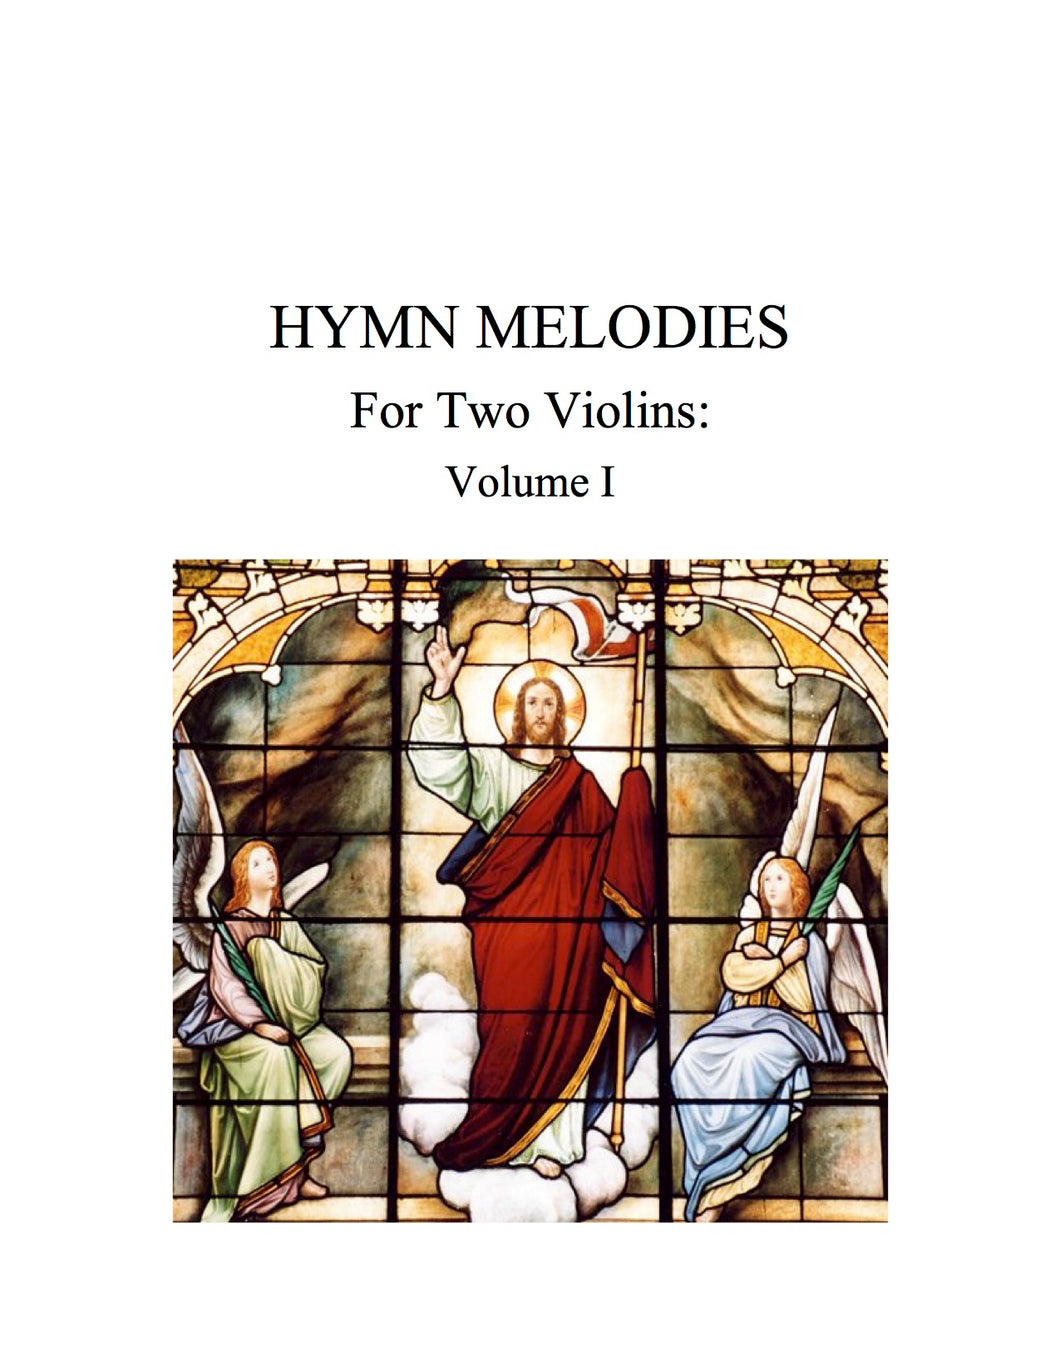 067 - Hymn Melodies For Two Violins, Volume I